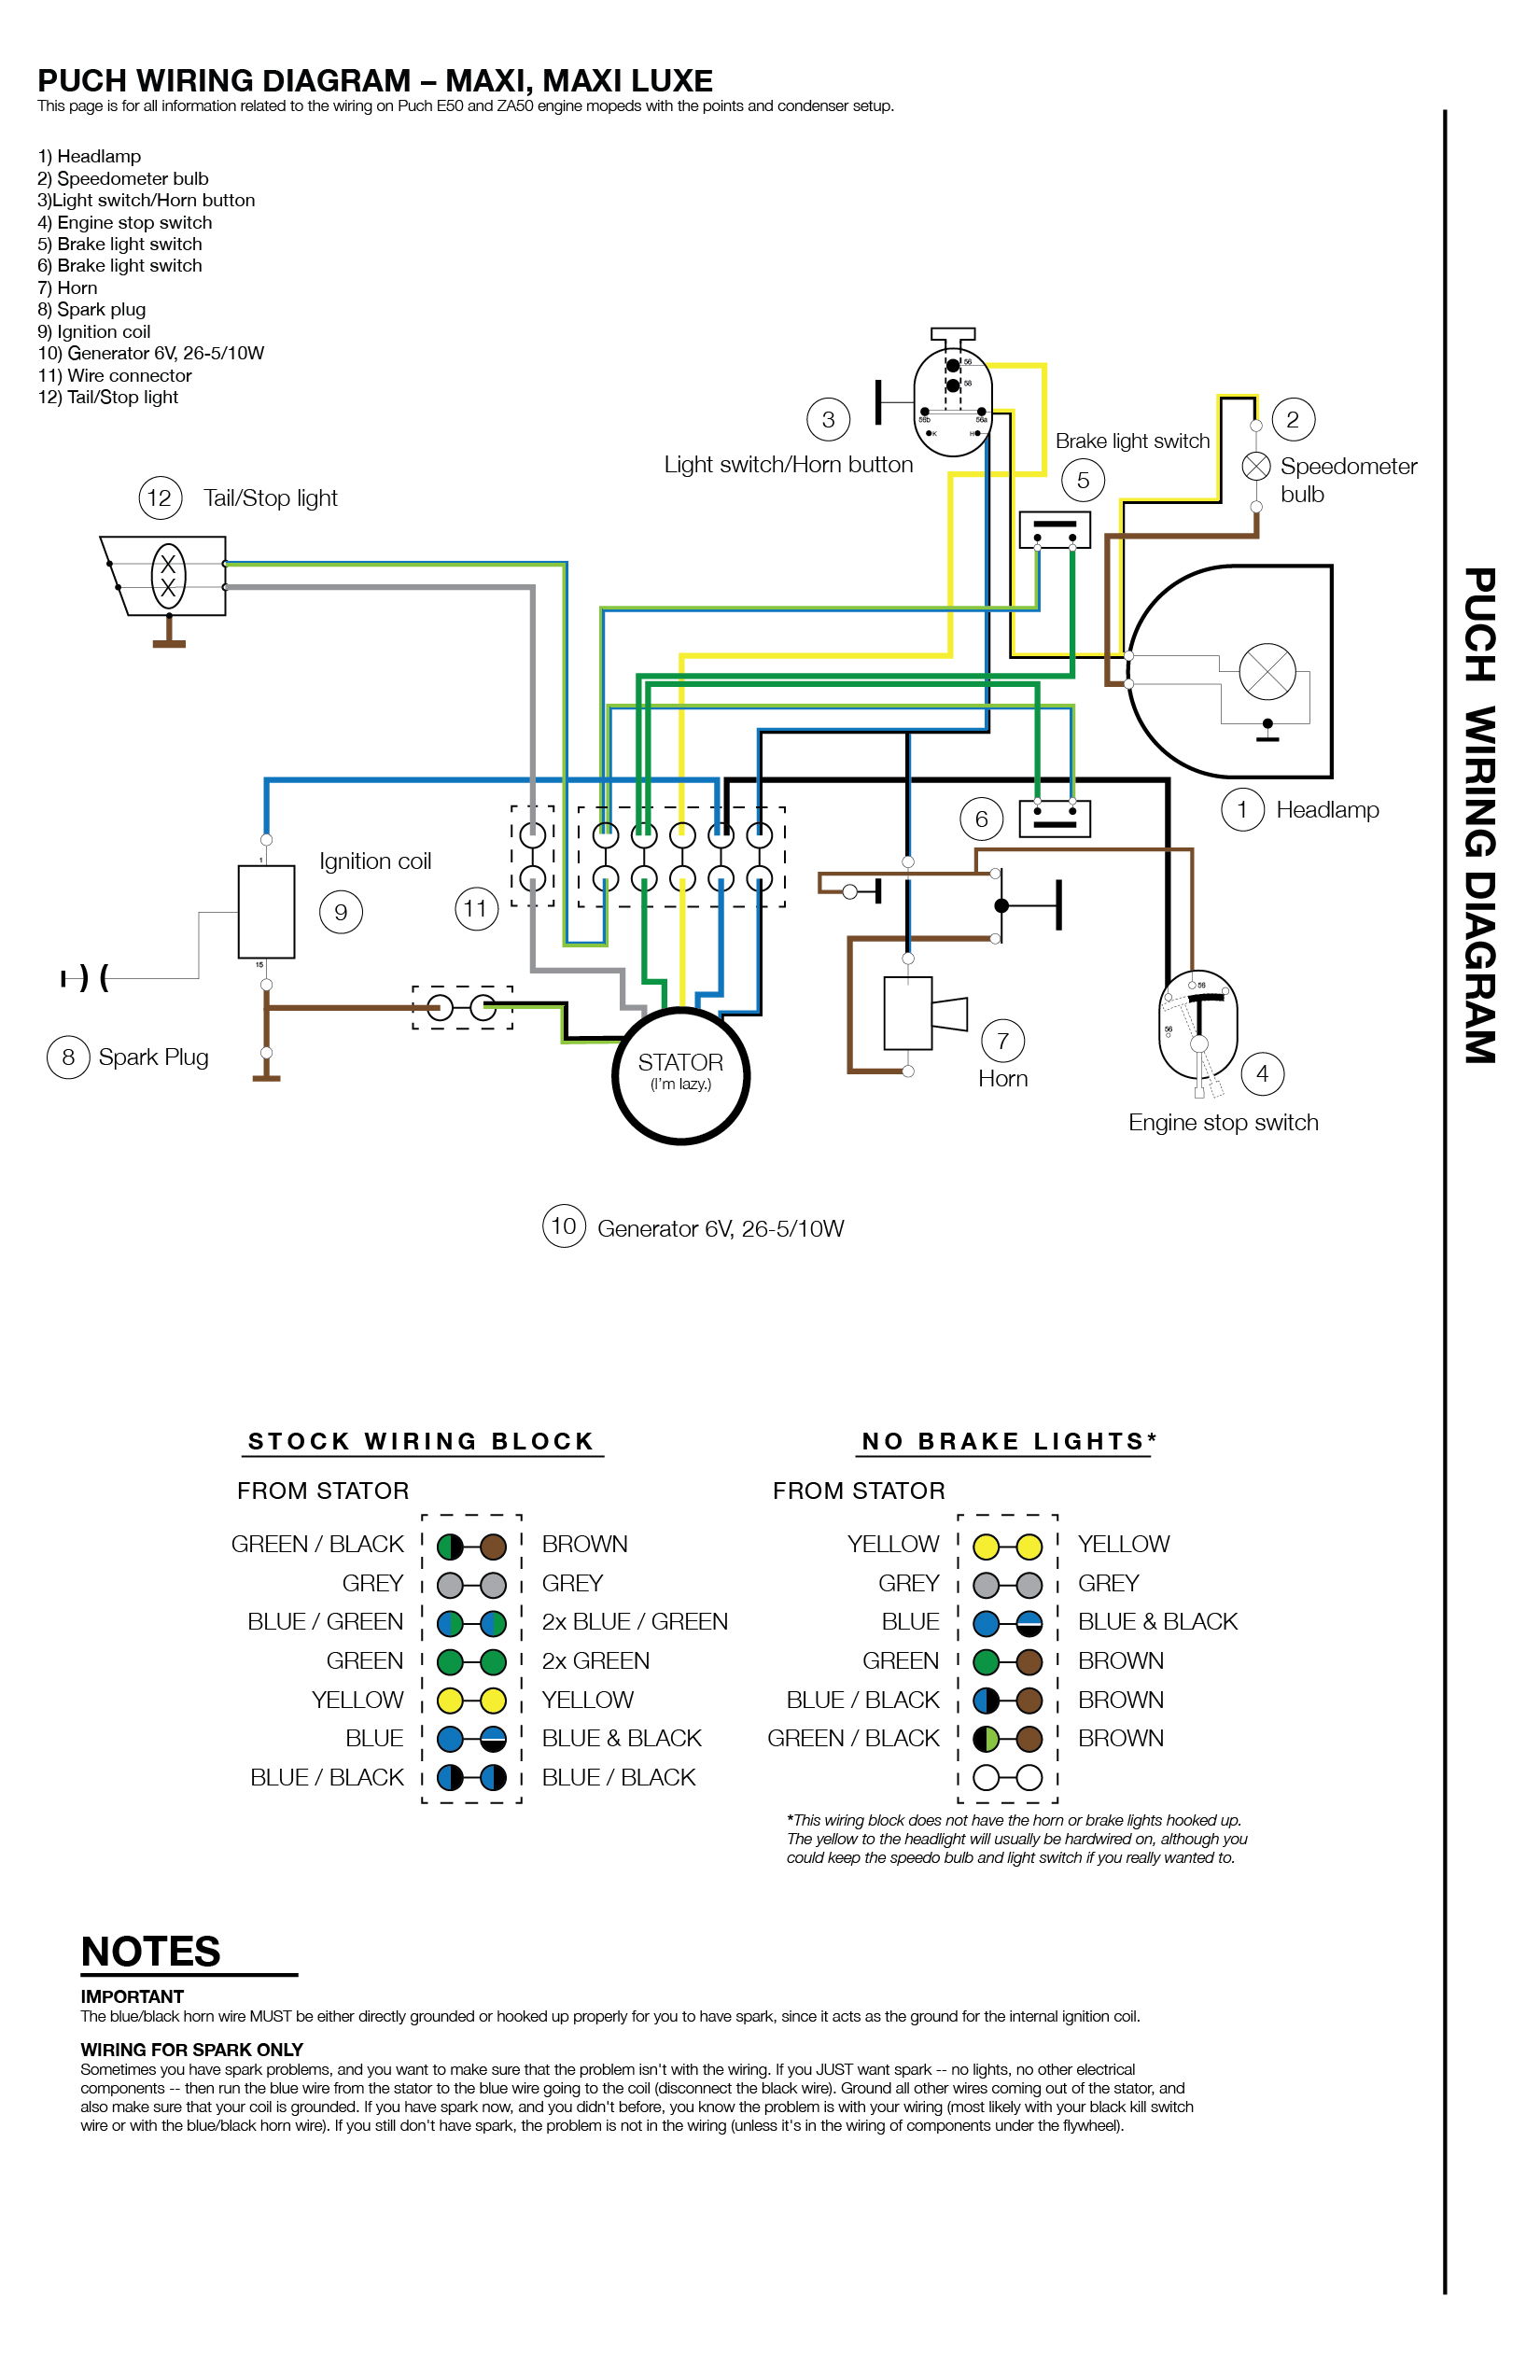 6 volt car wiring diagram basic electronics wiring diagram 6 Volt Positive Ground Ignition Wiring Diagram wiring 6 volt ignition coil circuit diagram wiring diagramwiring 6 volt ignition coil circuit diagram wiring